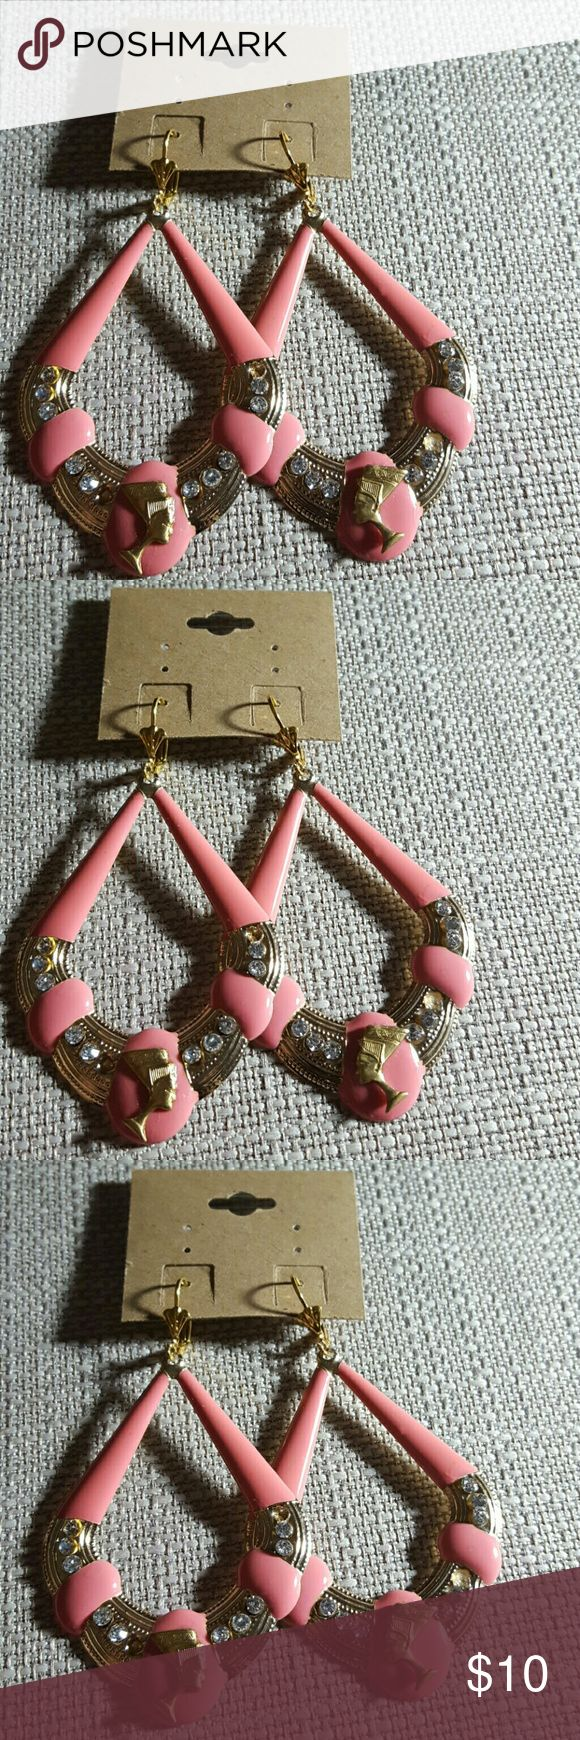 Coral pink queen Nefertiti earrings Coral pink queen Nefertiti earrings.   Gold tone Lever back ear wires Jewelry Earrings